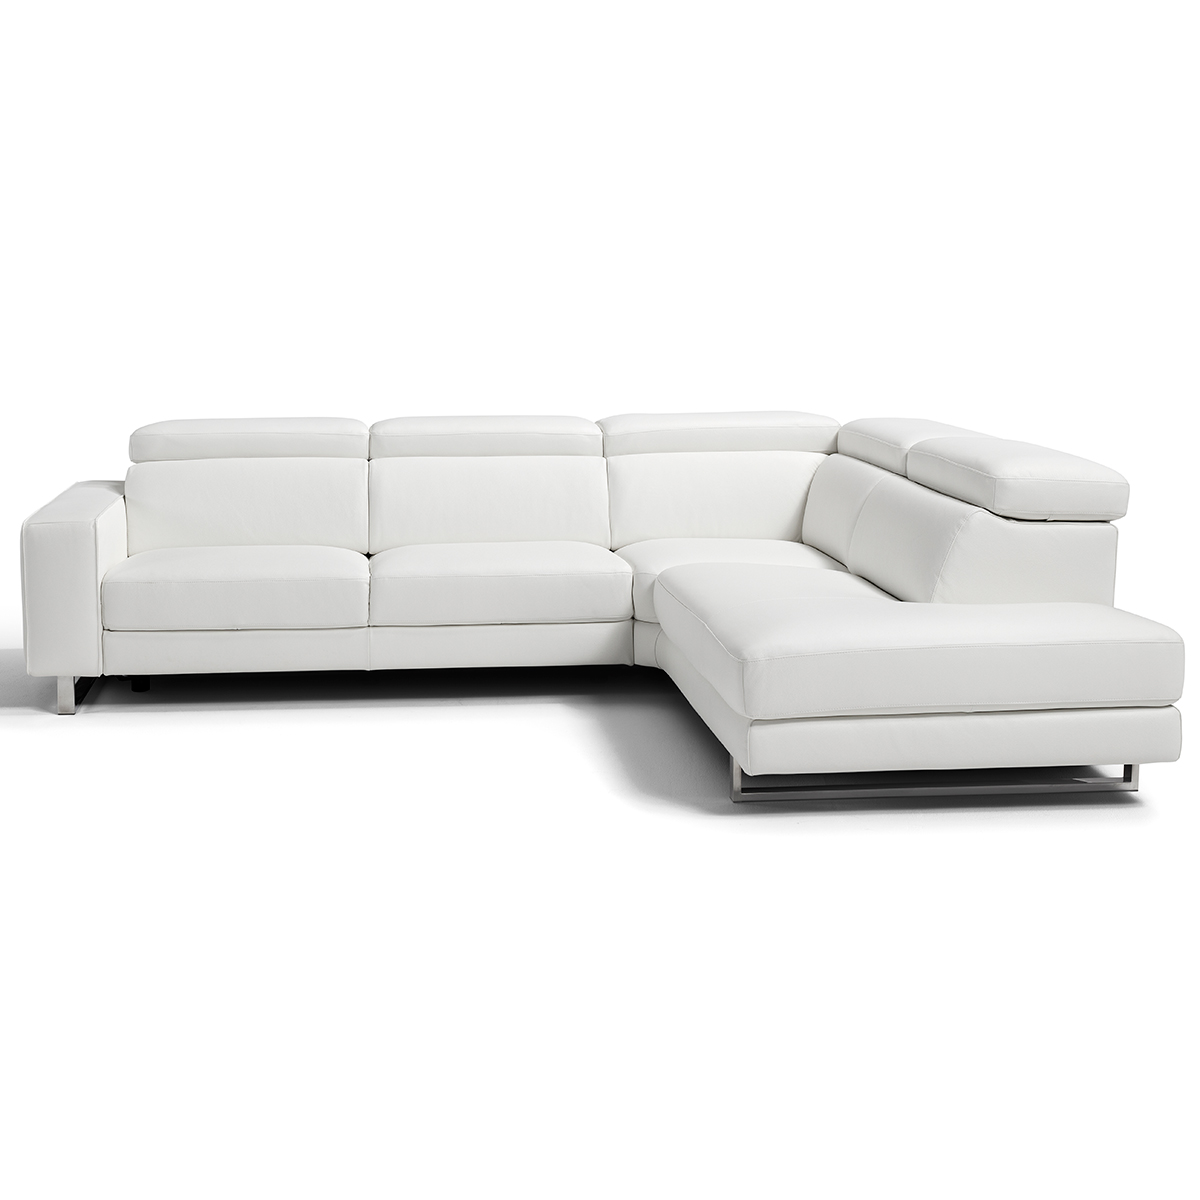 Awesome Augusto Large Sectional Sofa W Right Facing Chaise In White Top Grain Leather By Whiteline Imports Gmtry Best Dining Table And Chair Ideas Images Gmtryco